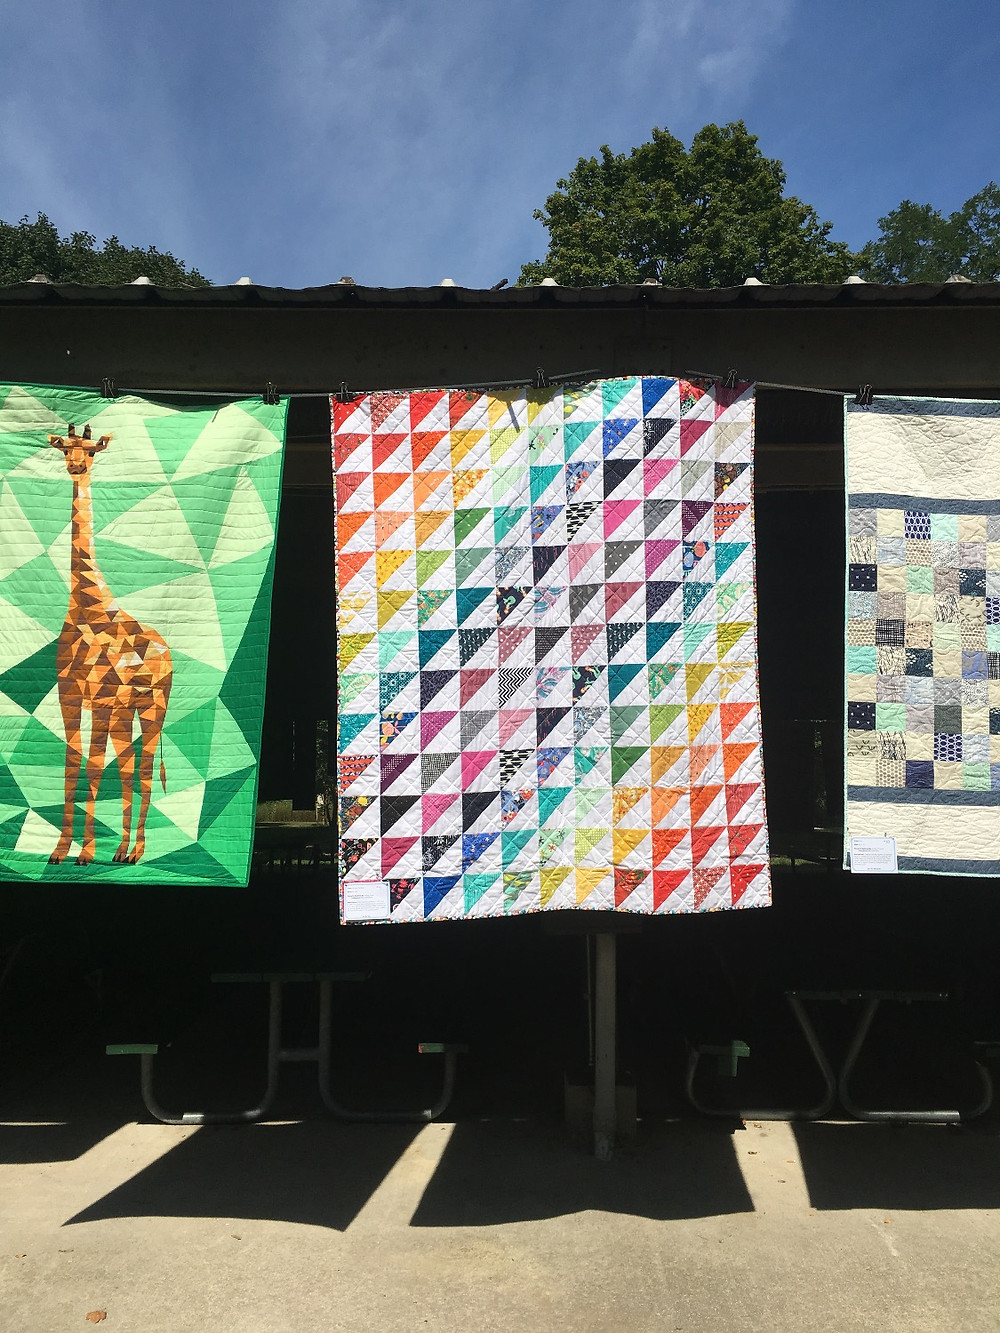 On display at the Indianapolis Modern Quilt Guild quilt show!